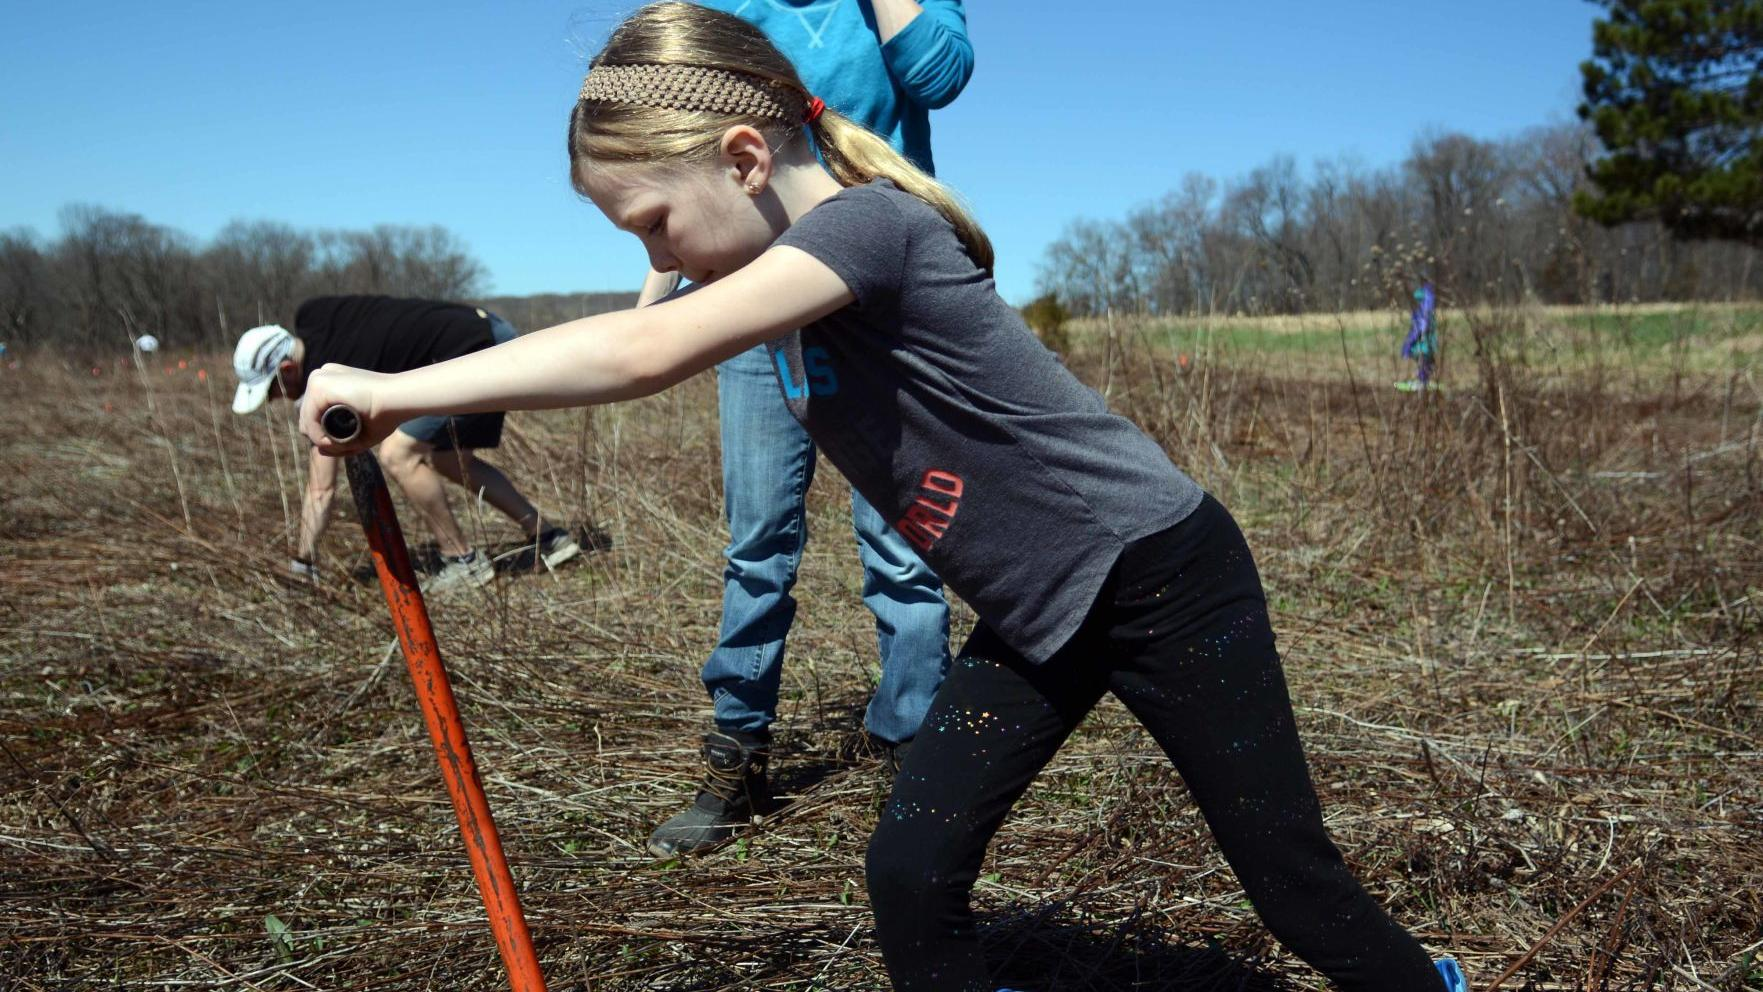 GALLERY: Tree planting for Nature Conservancy on Baraboo Hills, April 20